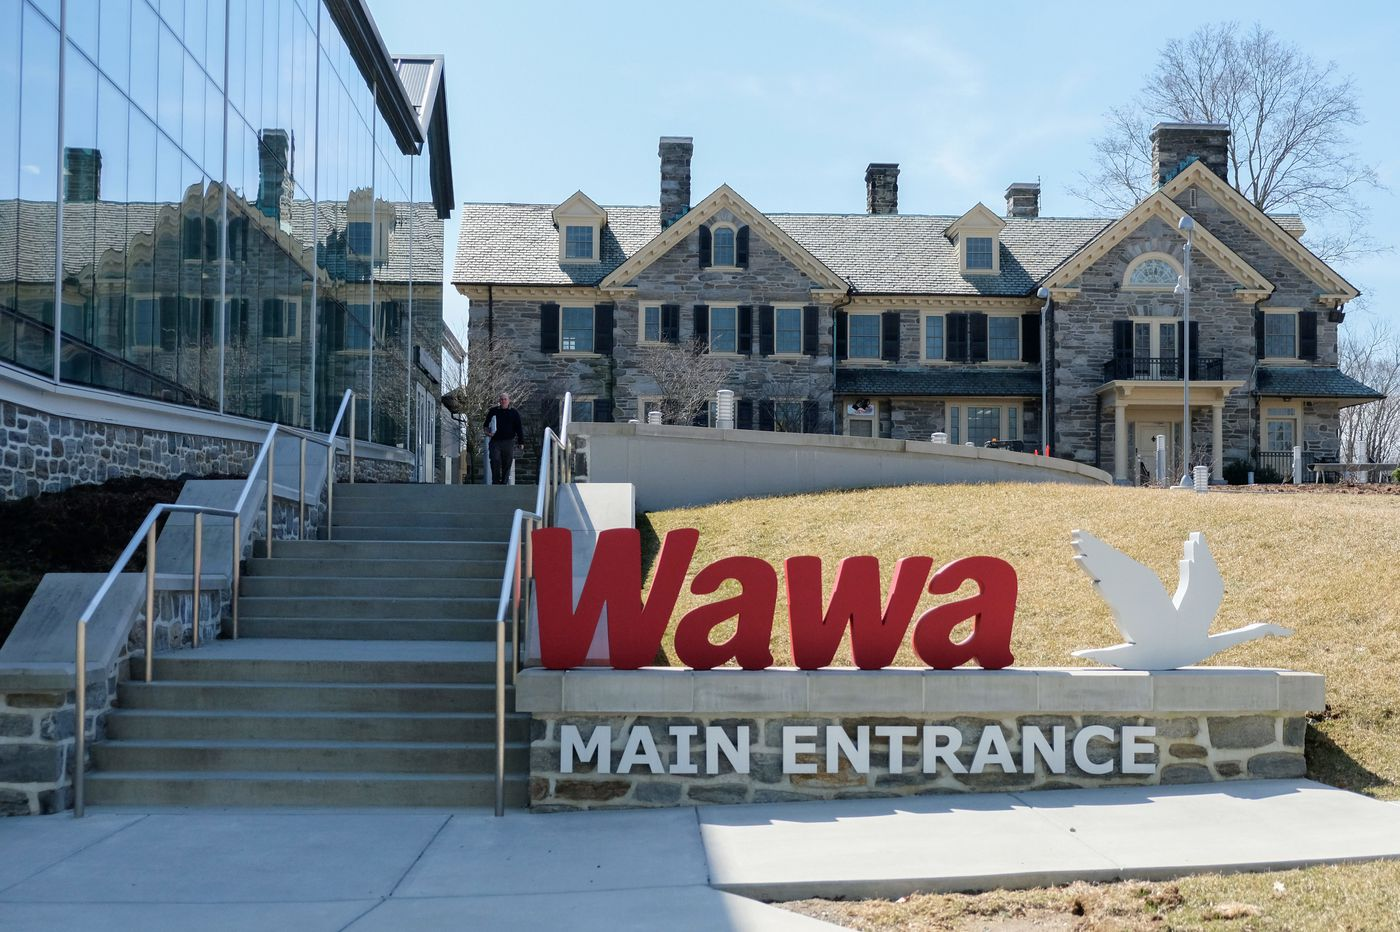 Wawa founding family accused of cheating former workers out of millions in company stock